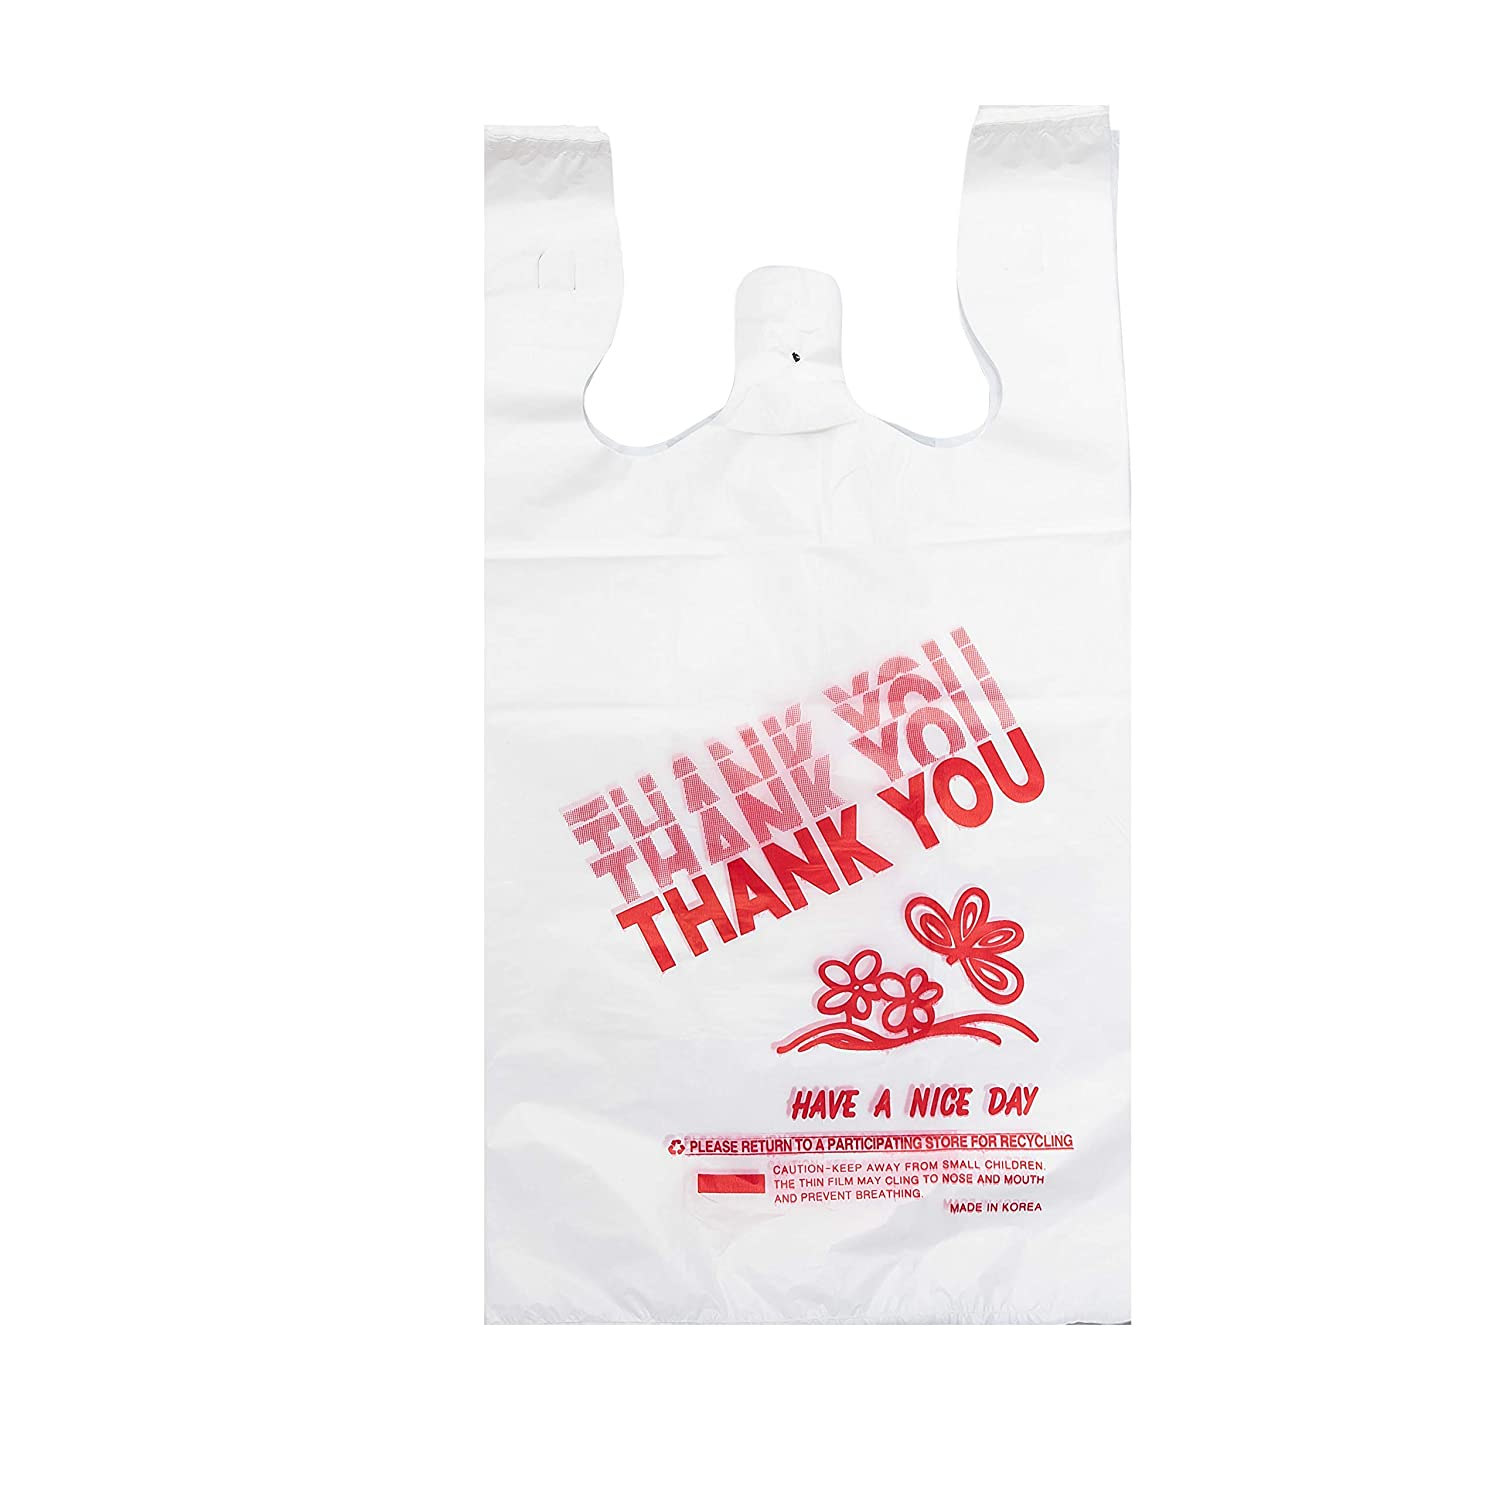 "Thank You Bags (400 Count), Plastic T-Shirt Bags Bulk, Plastic Shopping Bags, Plastic Grocery Bags with Handles Bulk, Plastic Retail Bags, 12"" X 7"" X 22"" 17 Mic (0.67 mil), by HY"